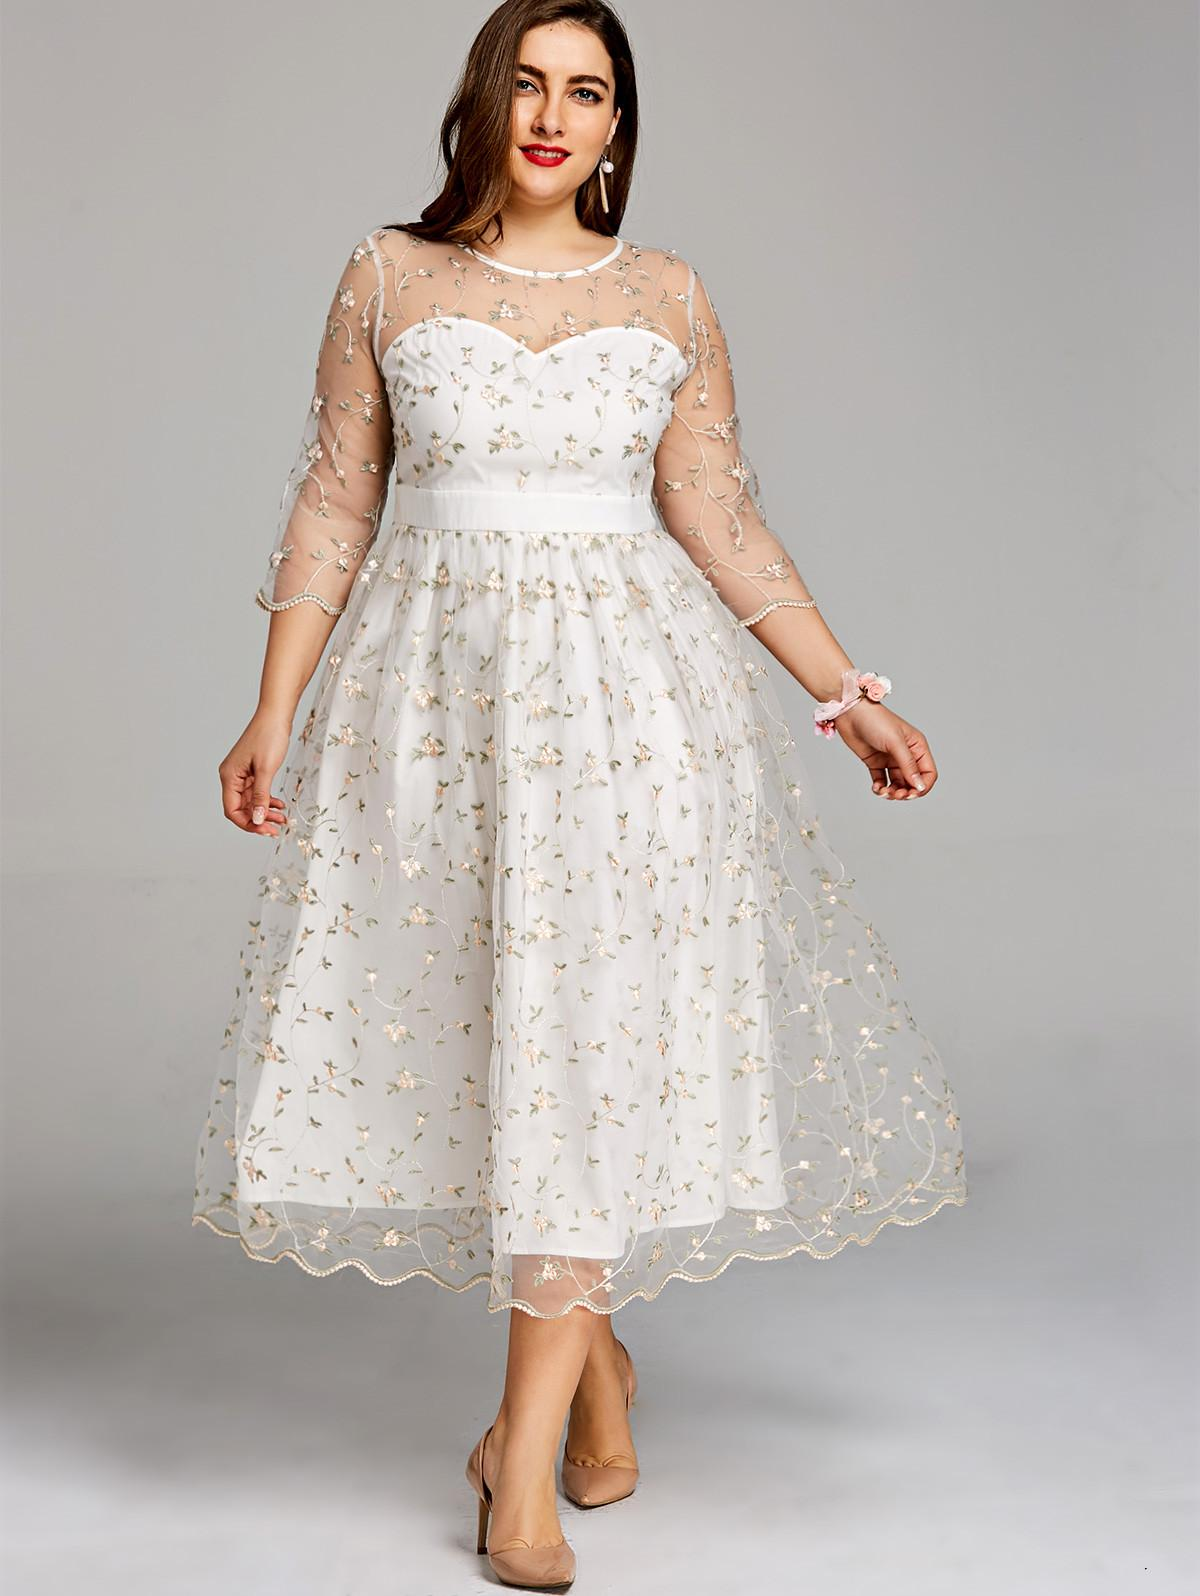 Women Party Dress Plus Size 5xl Embroidery Floral Midi Tulle Dress  Scalloped Edges Elegant O Neck A -Line Dresses